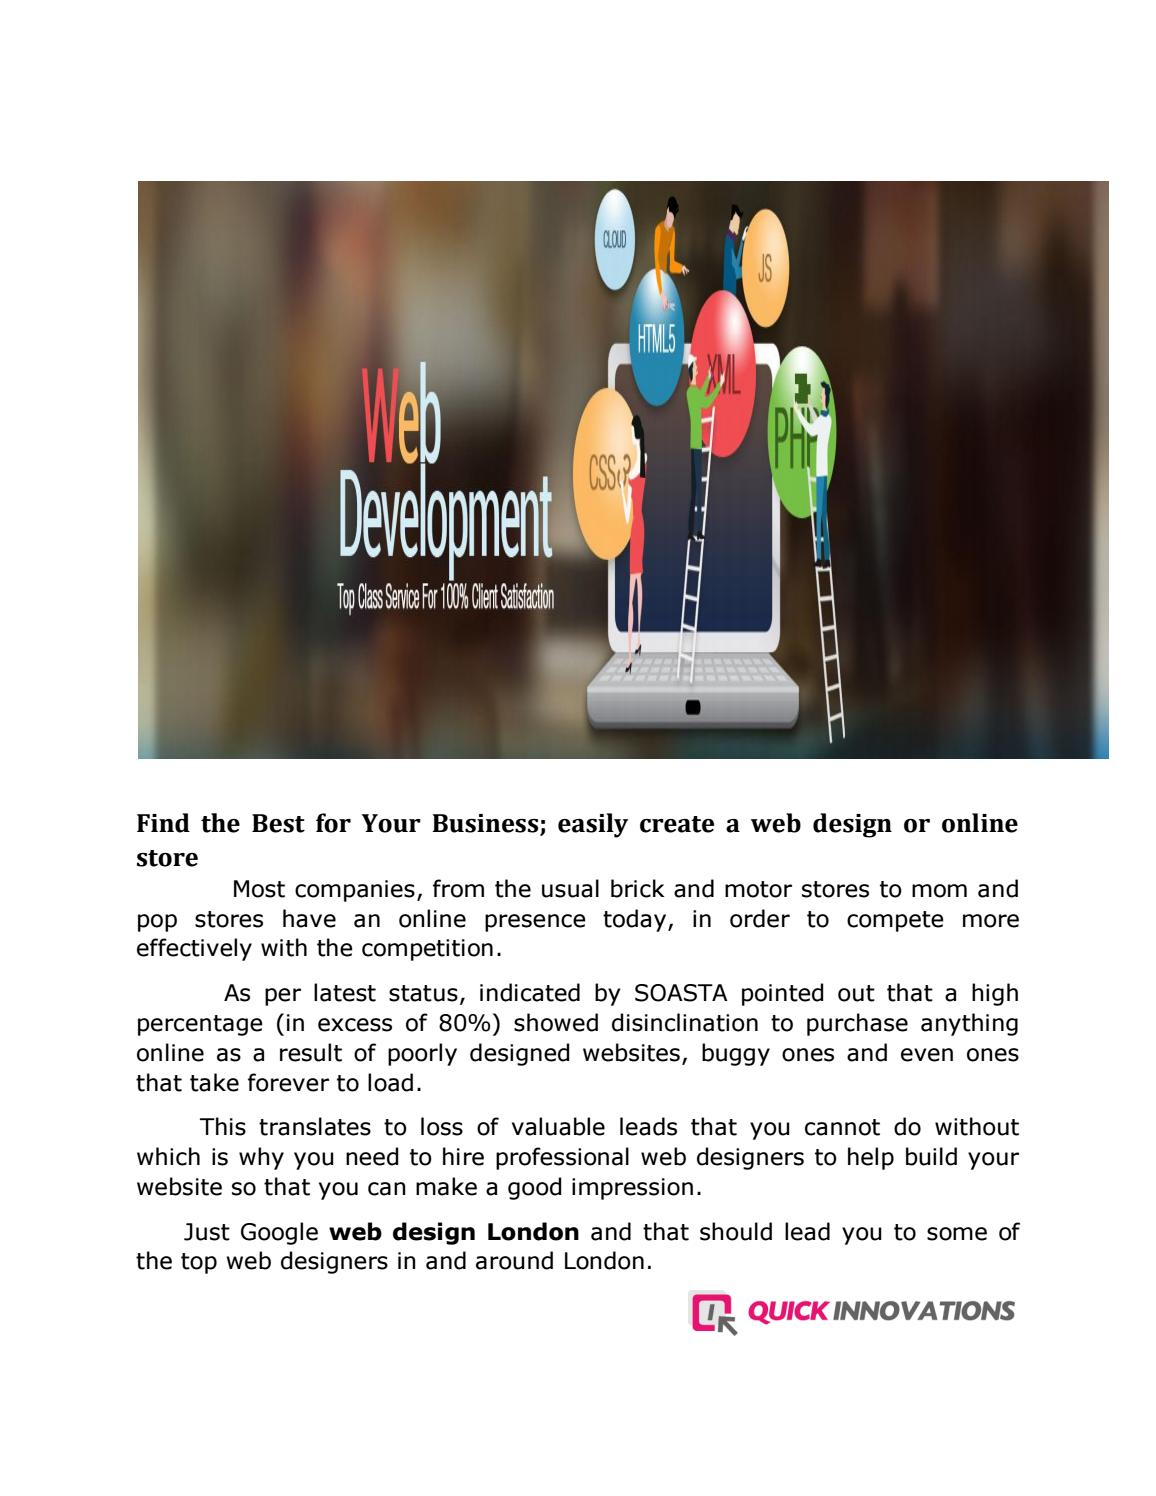 Cheap Web Design London 2 By Quickinnovations Issuu